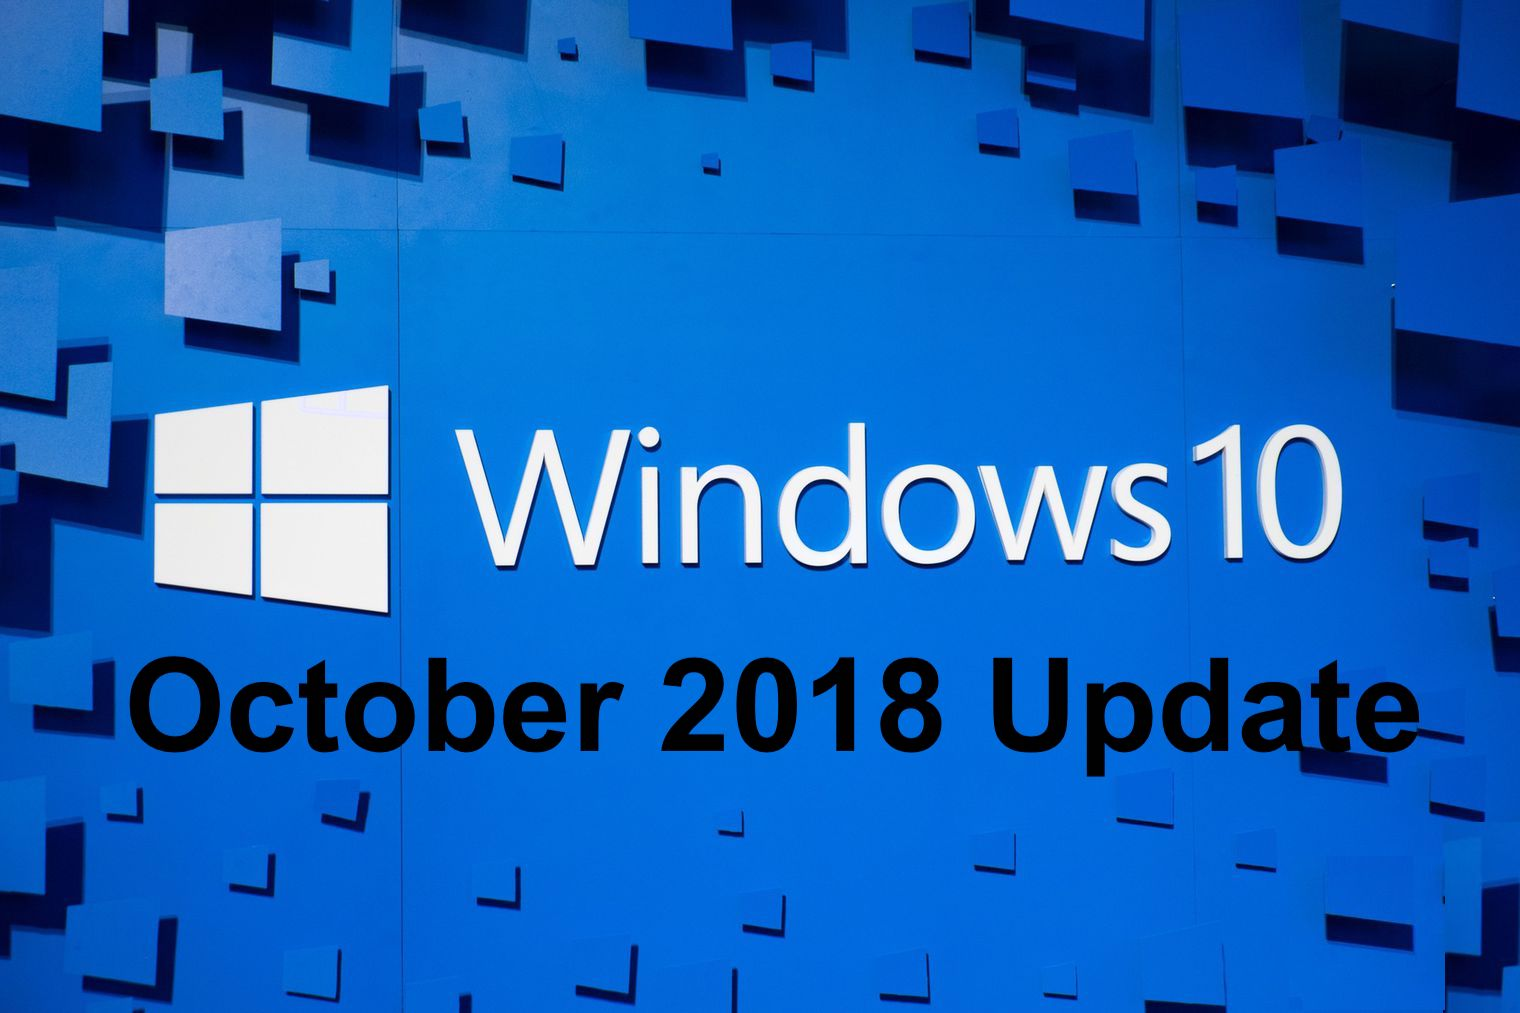 windows-10-october-2018-update.jpg